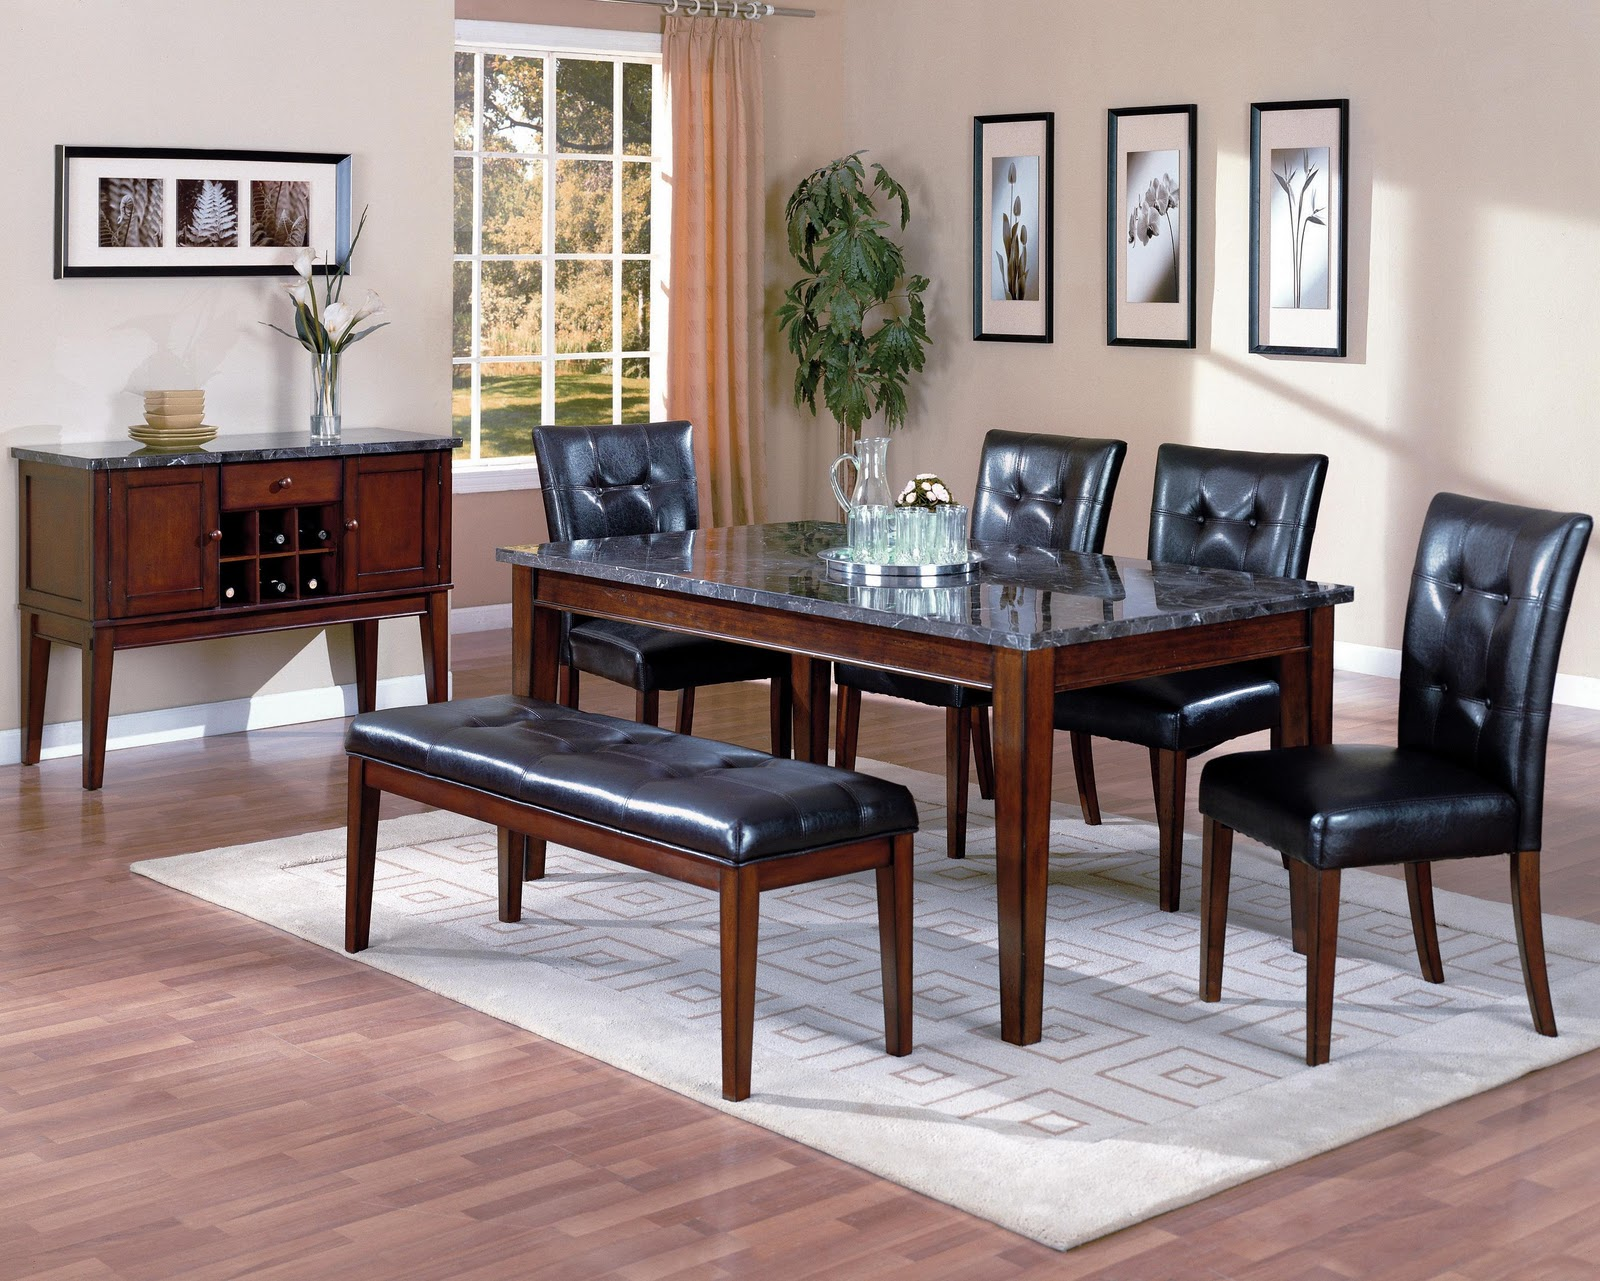 royal furniture outlet world imports 6284 dining room set royal furniture outlet 215 355. Black Bedroom Furniture Sets. Home Design Ideas